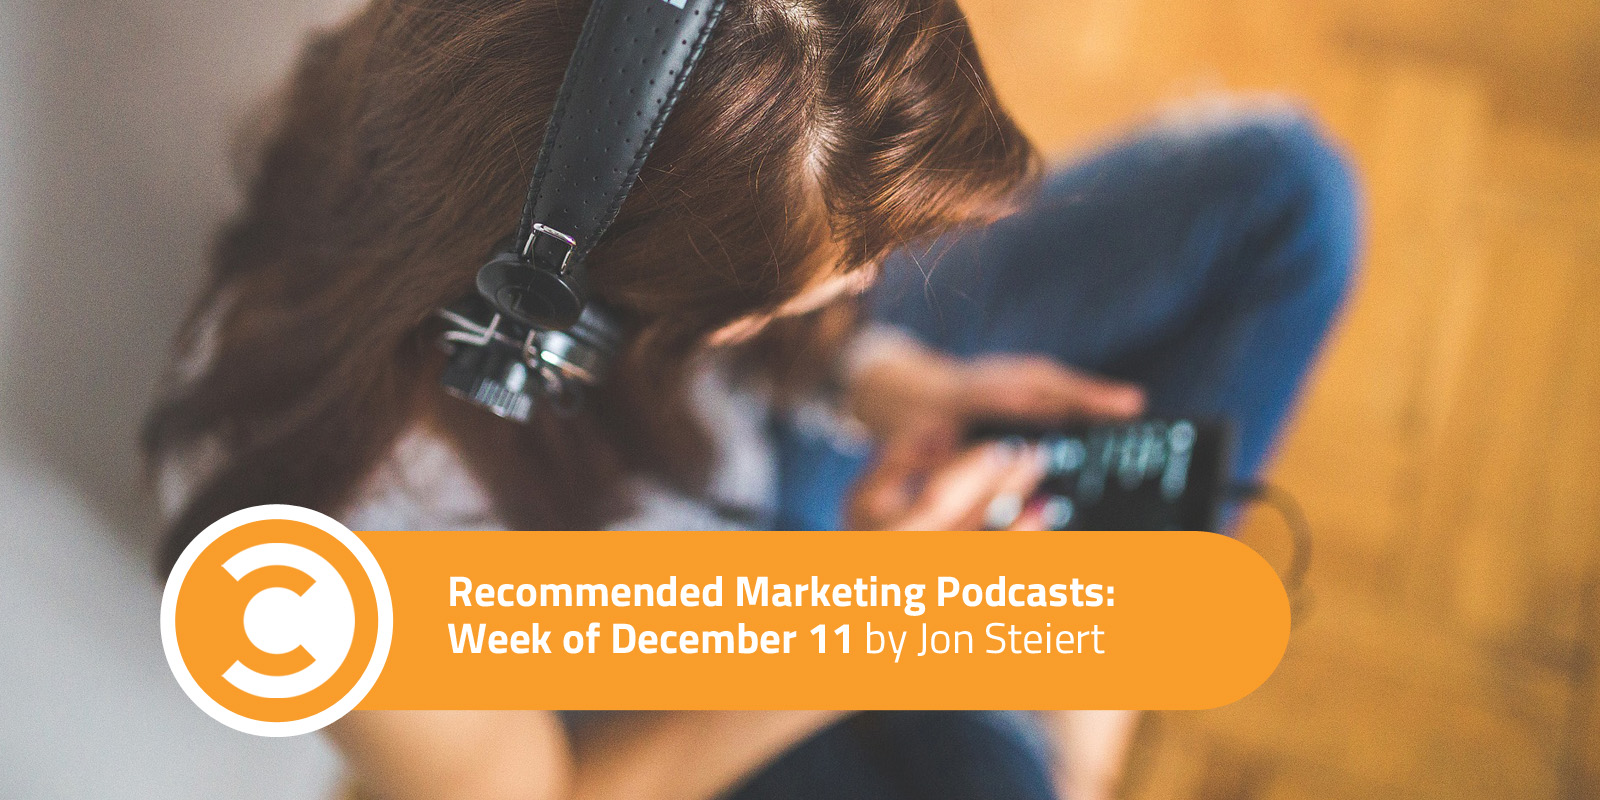 Recommended Marketing Podcasts Week of December 11